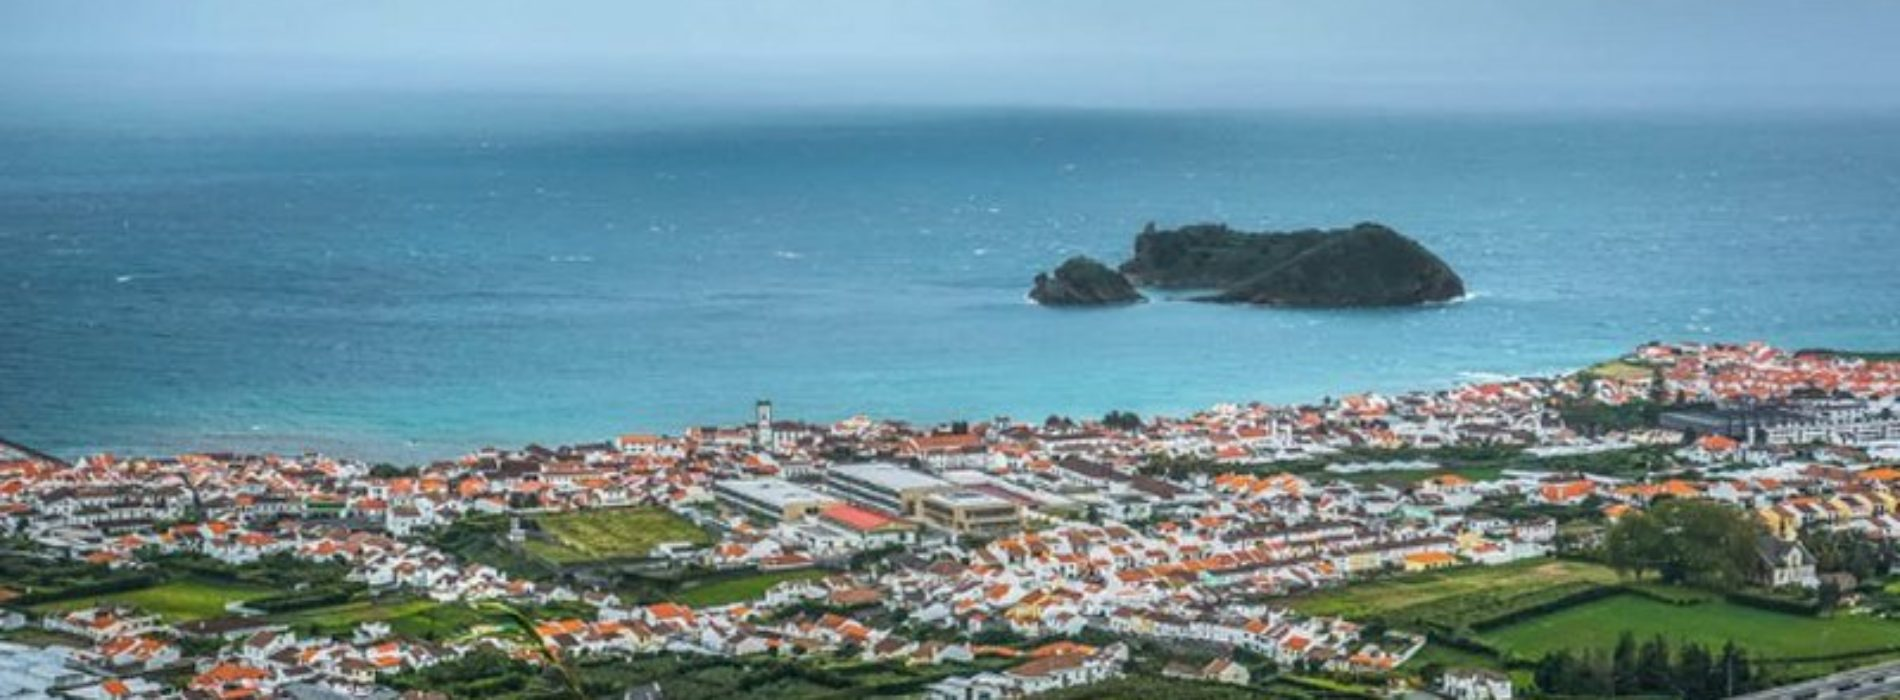 10 reasons to visit Azores for an accessible holiday